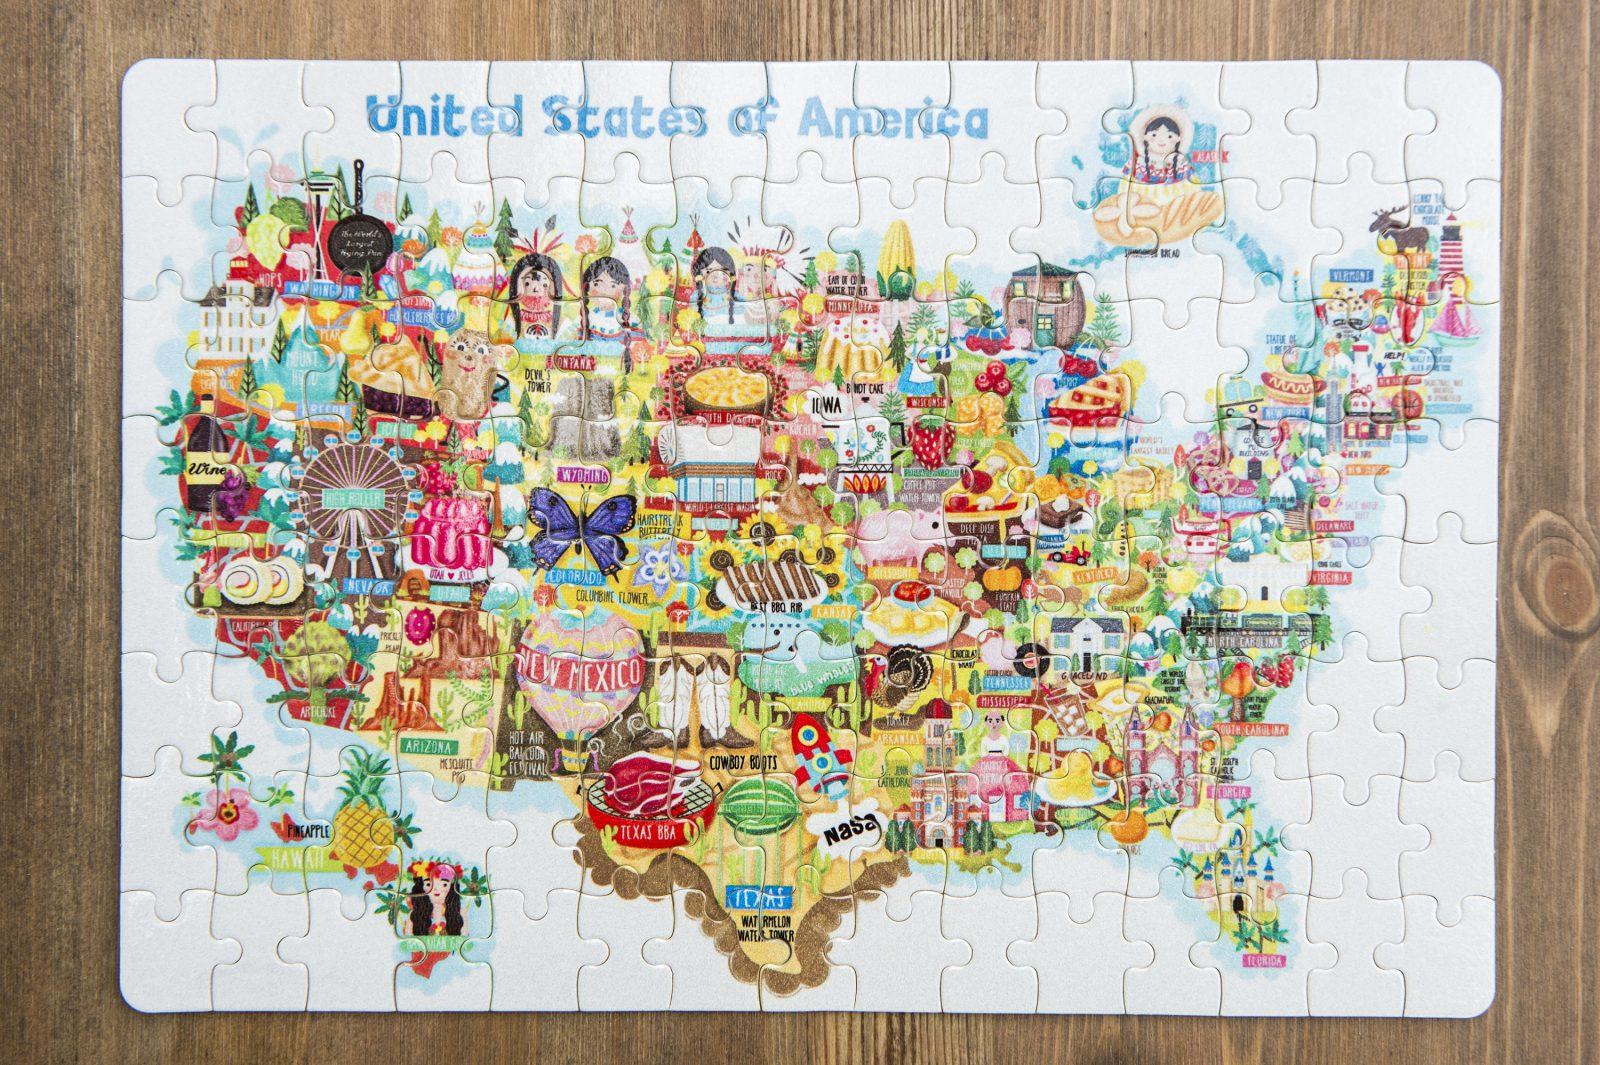 USA Map Illustration Jigsaw Puzzles Pieces Liv Wan Illustration - Usa map jigsaw puzzle